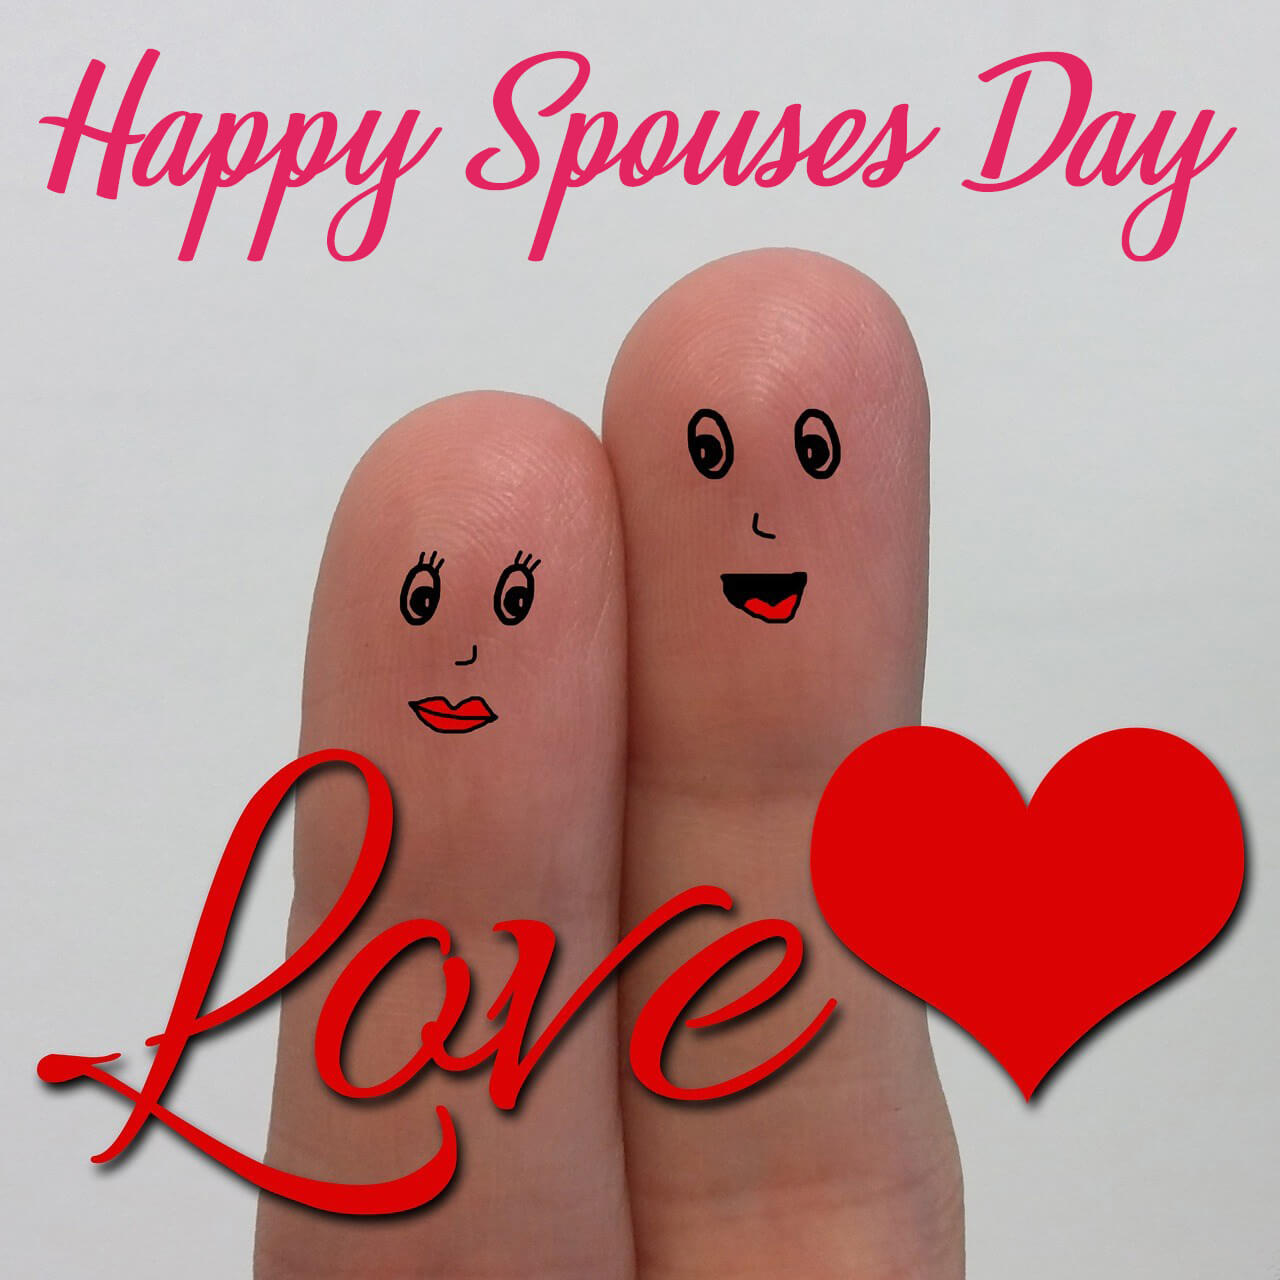 happy spouses day greetings wishes hd wallpaper